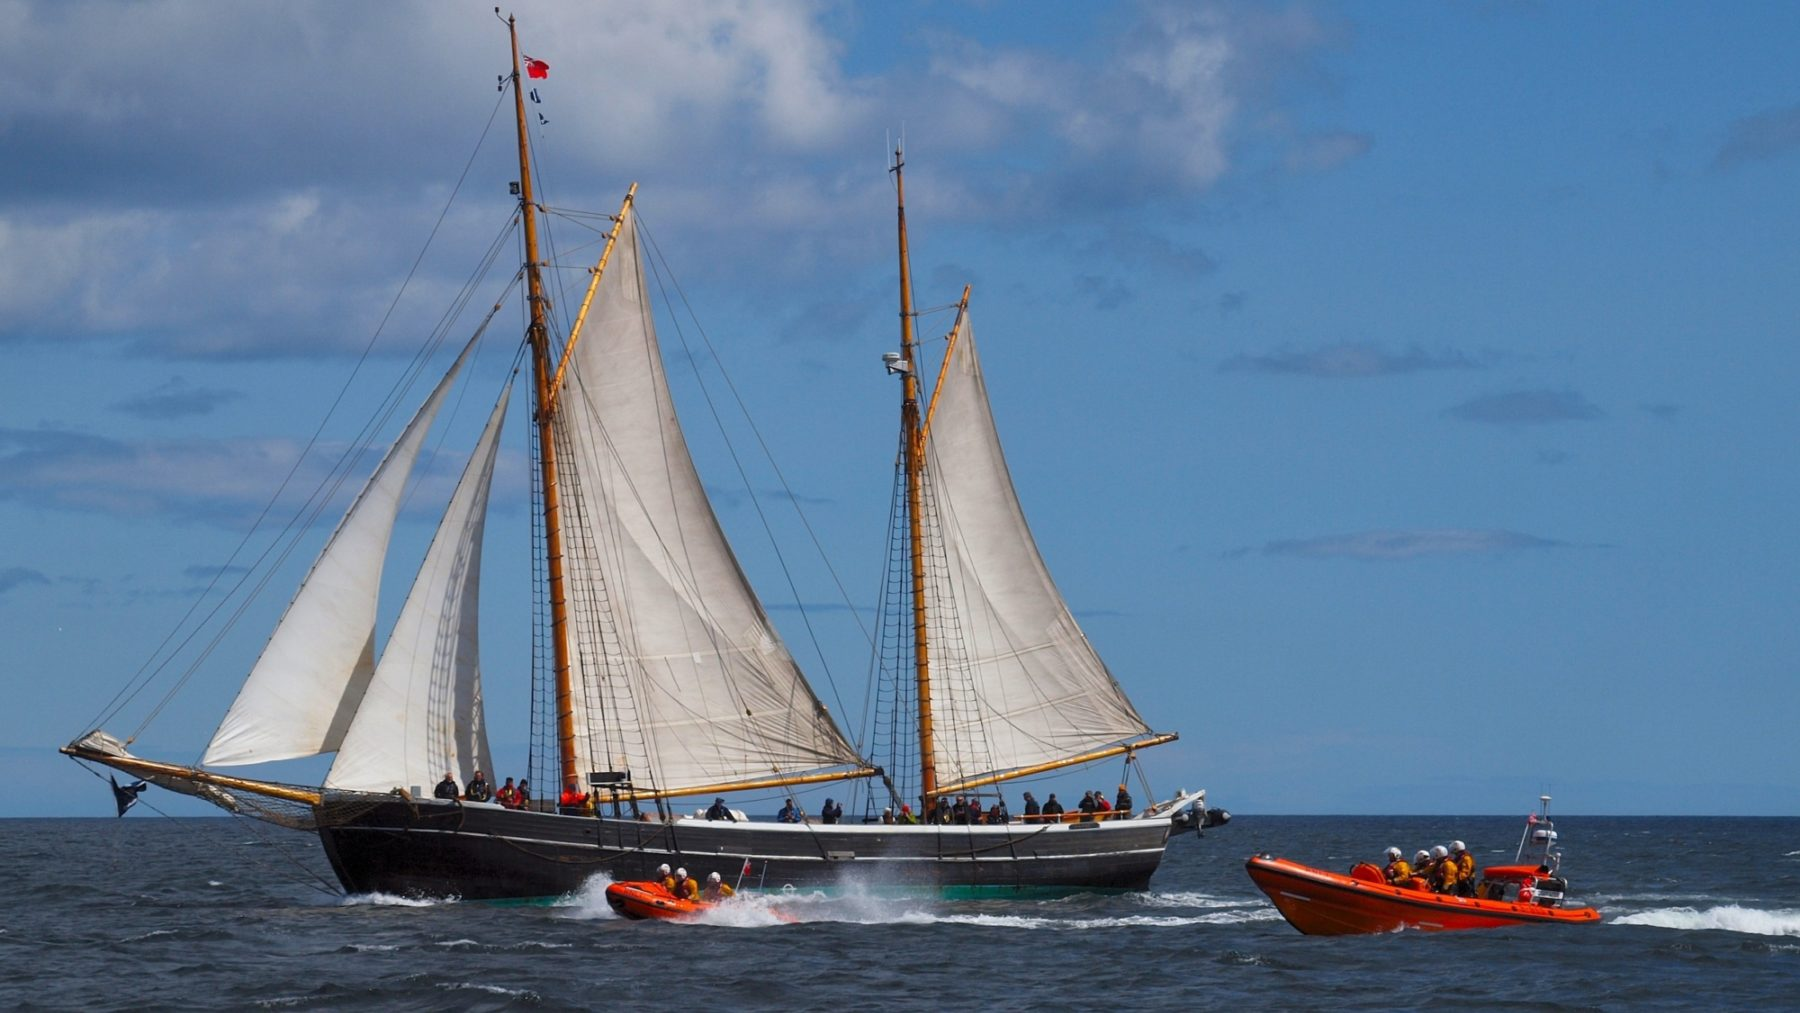 The Blyth Tall Ship Project